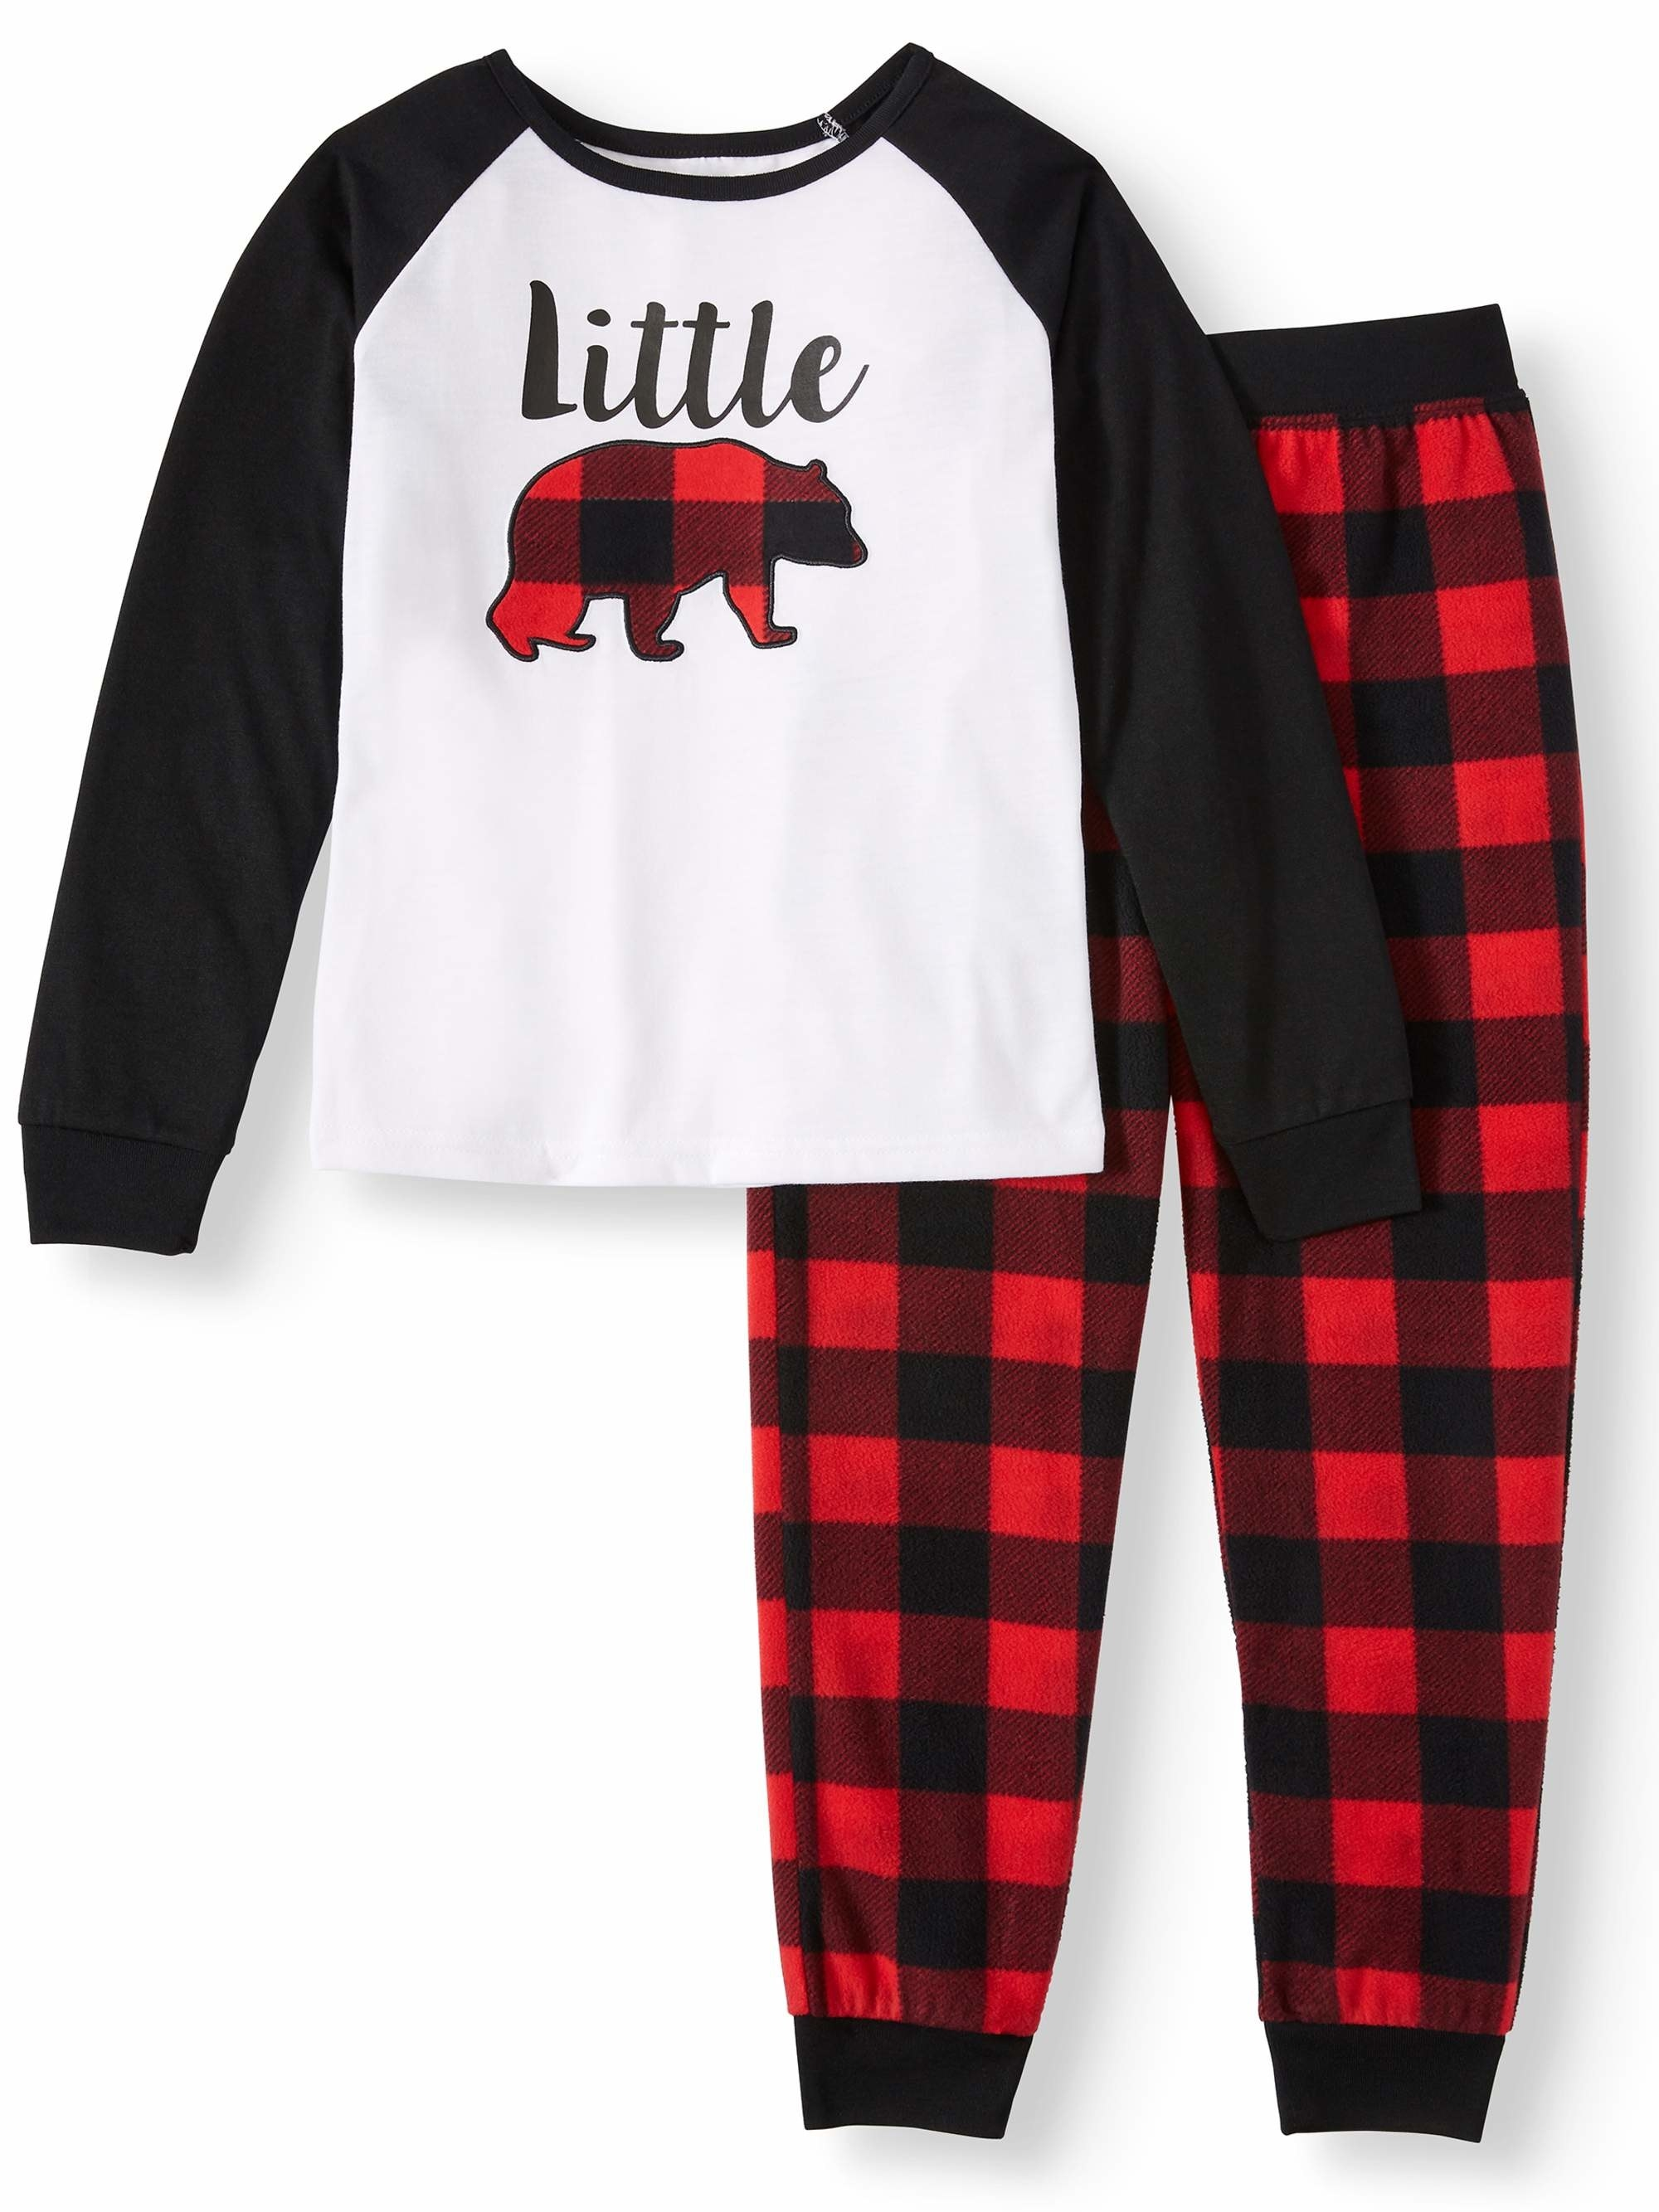 Black and white pajama shirt and matching red and black buffalo plaid pants